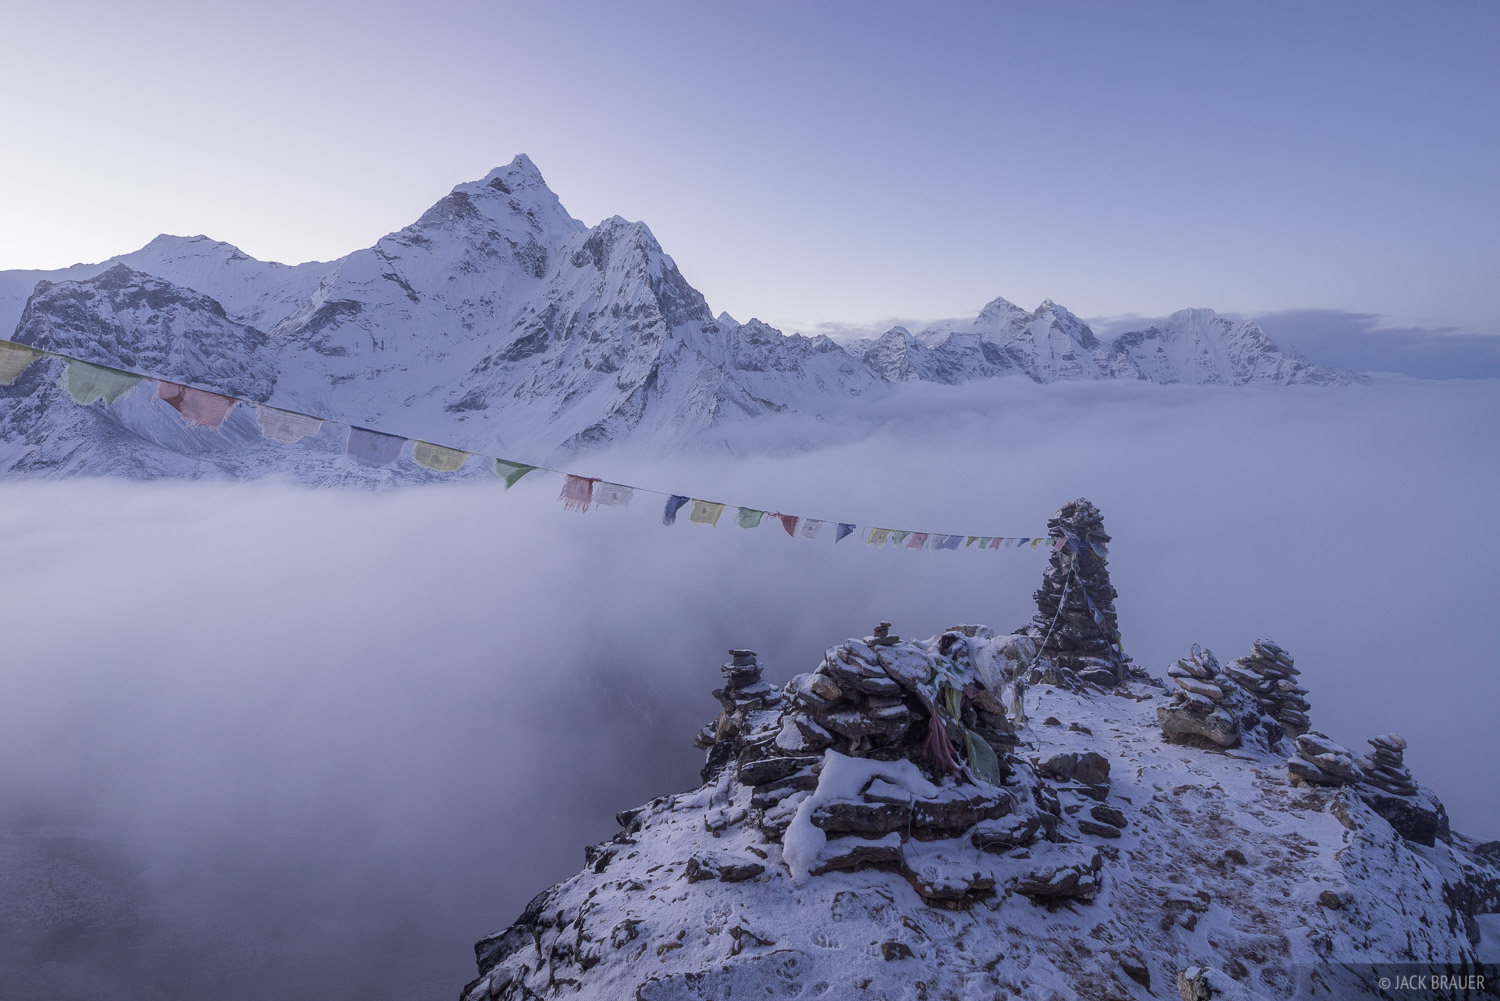 Ama Dablam,Himalaya,Khumbu,Nepal,prayer flags, Dingboche, photo